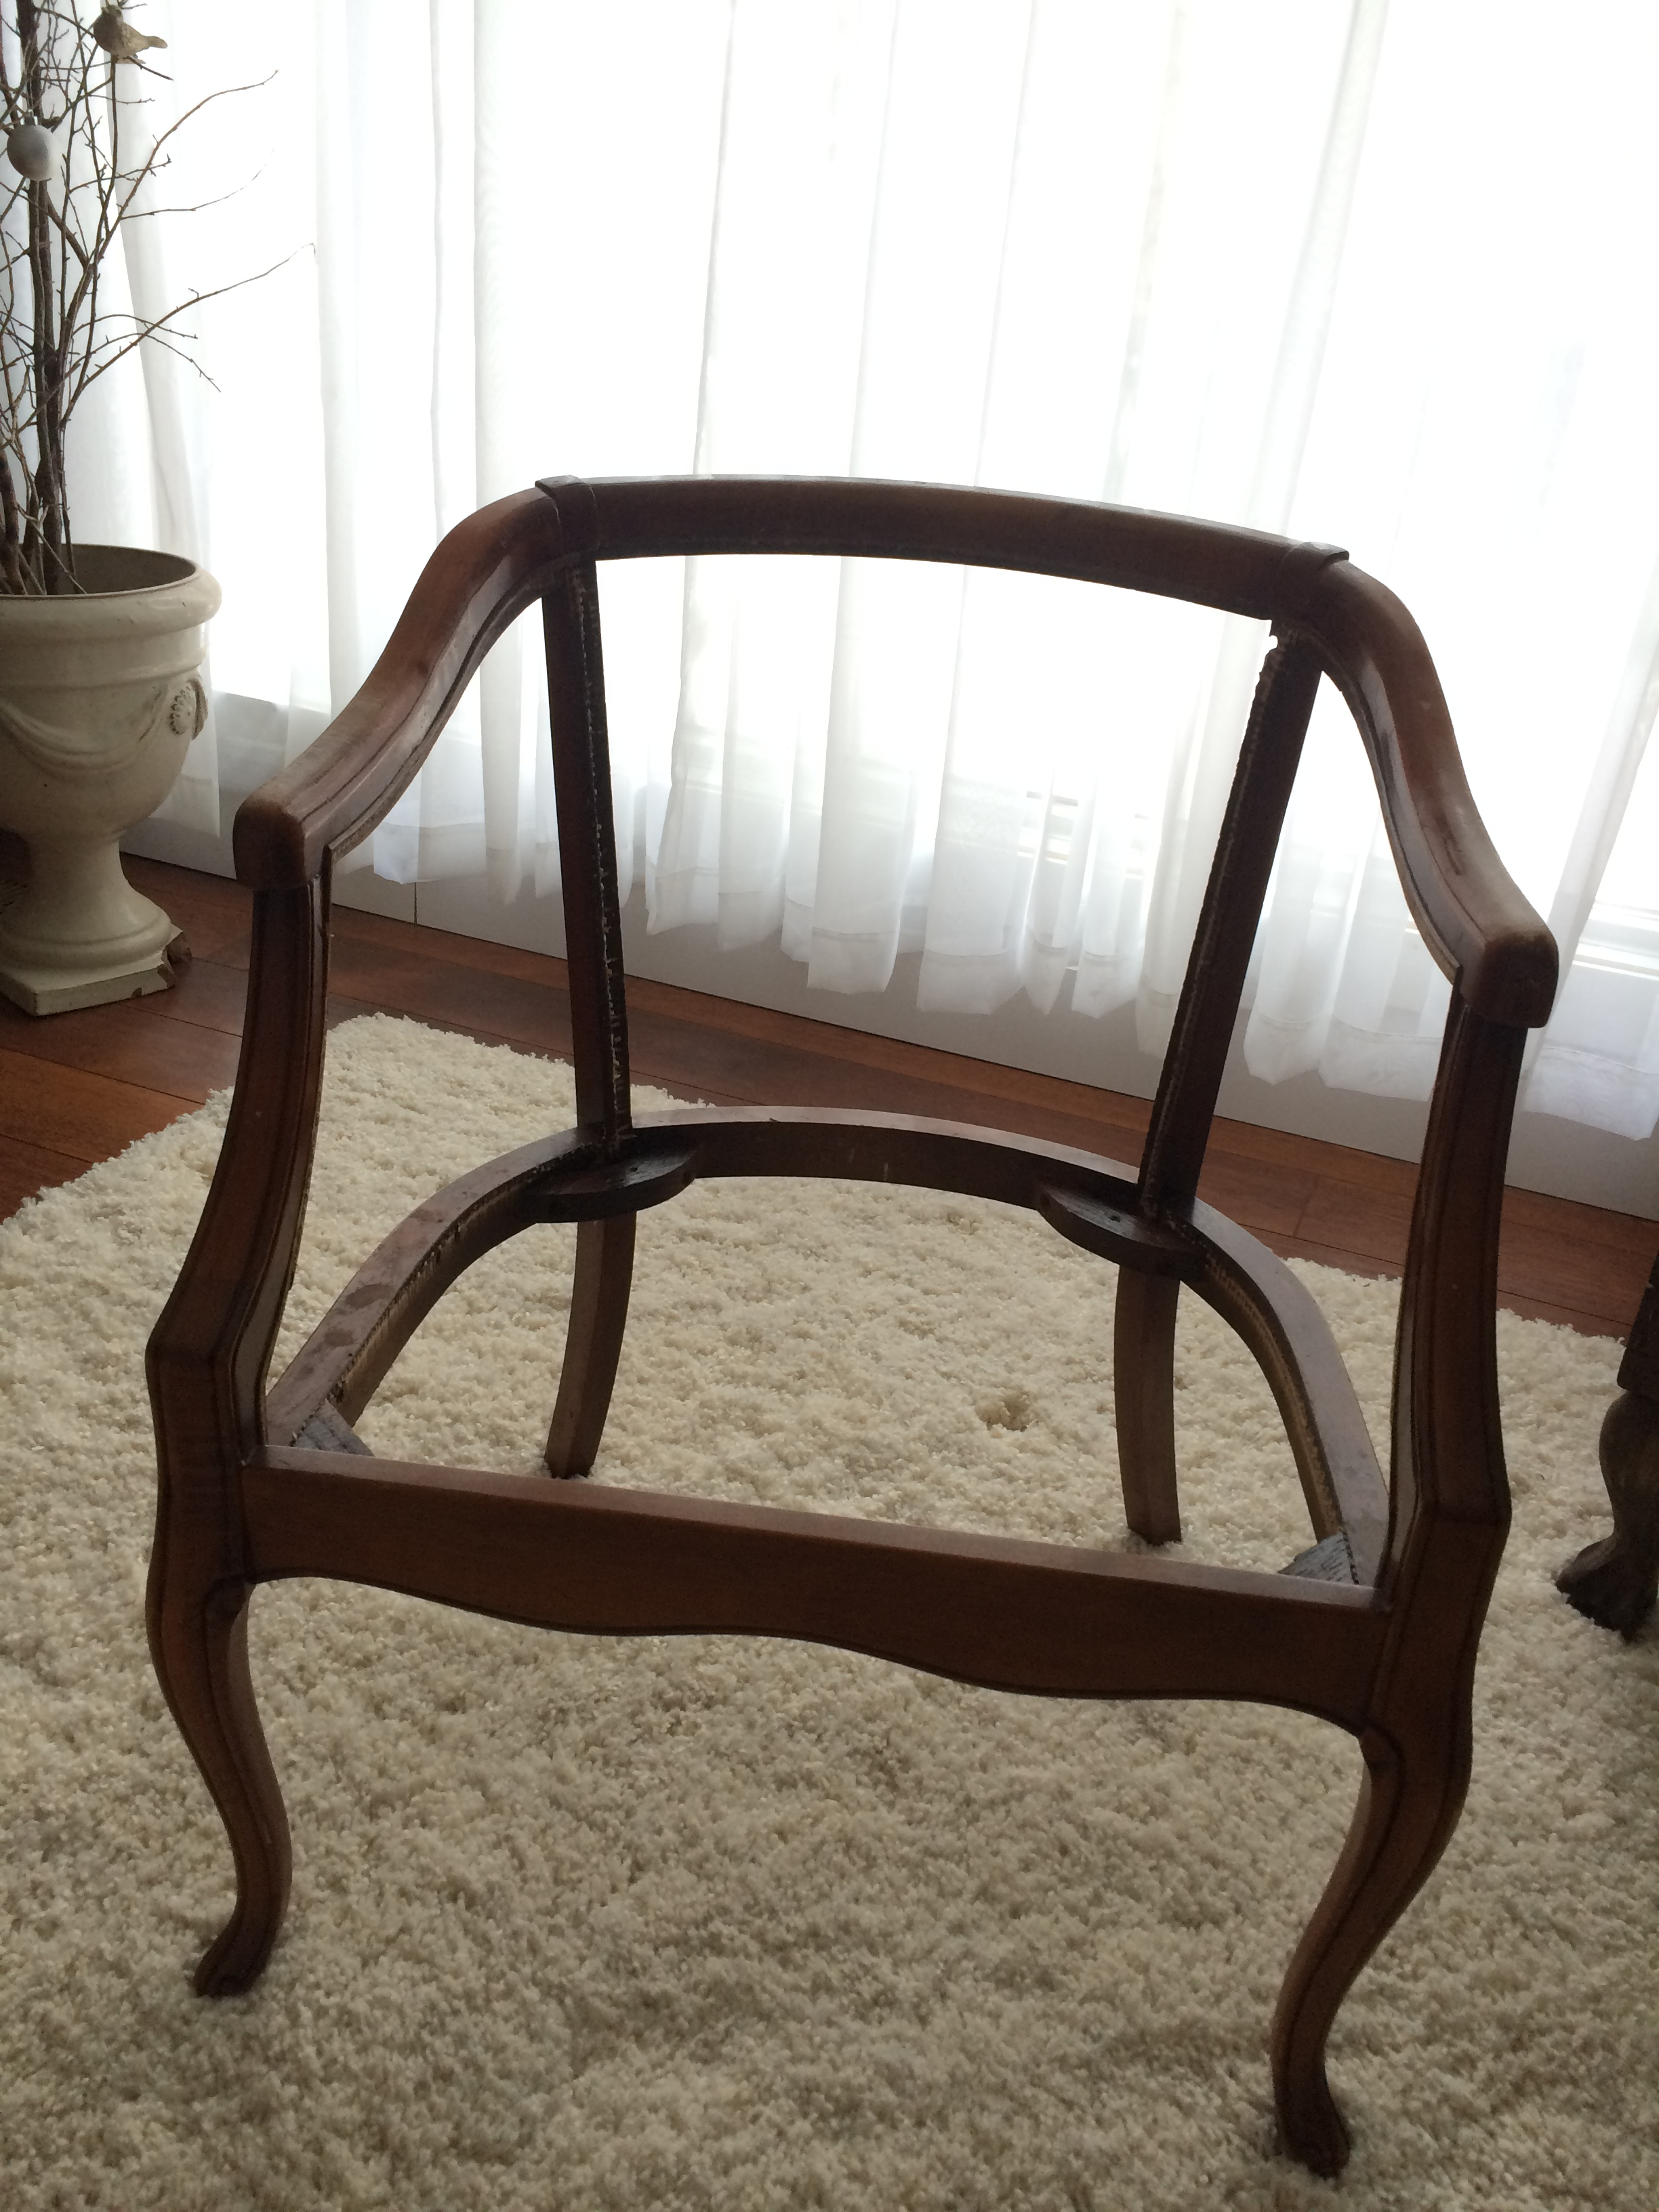 Once The Chair Was Stripped Down To Just The Frame, I Painted It With Milk  Paint In The Color Typewriter. When It Was Dry I Sanded It Smooth Until  Some Of ...